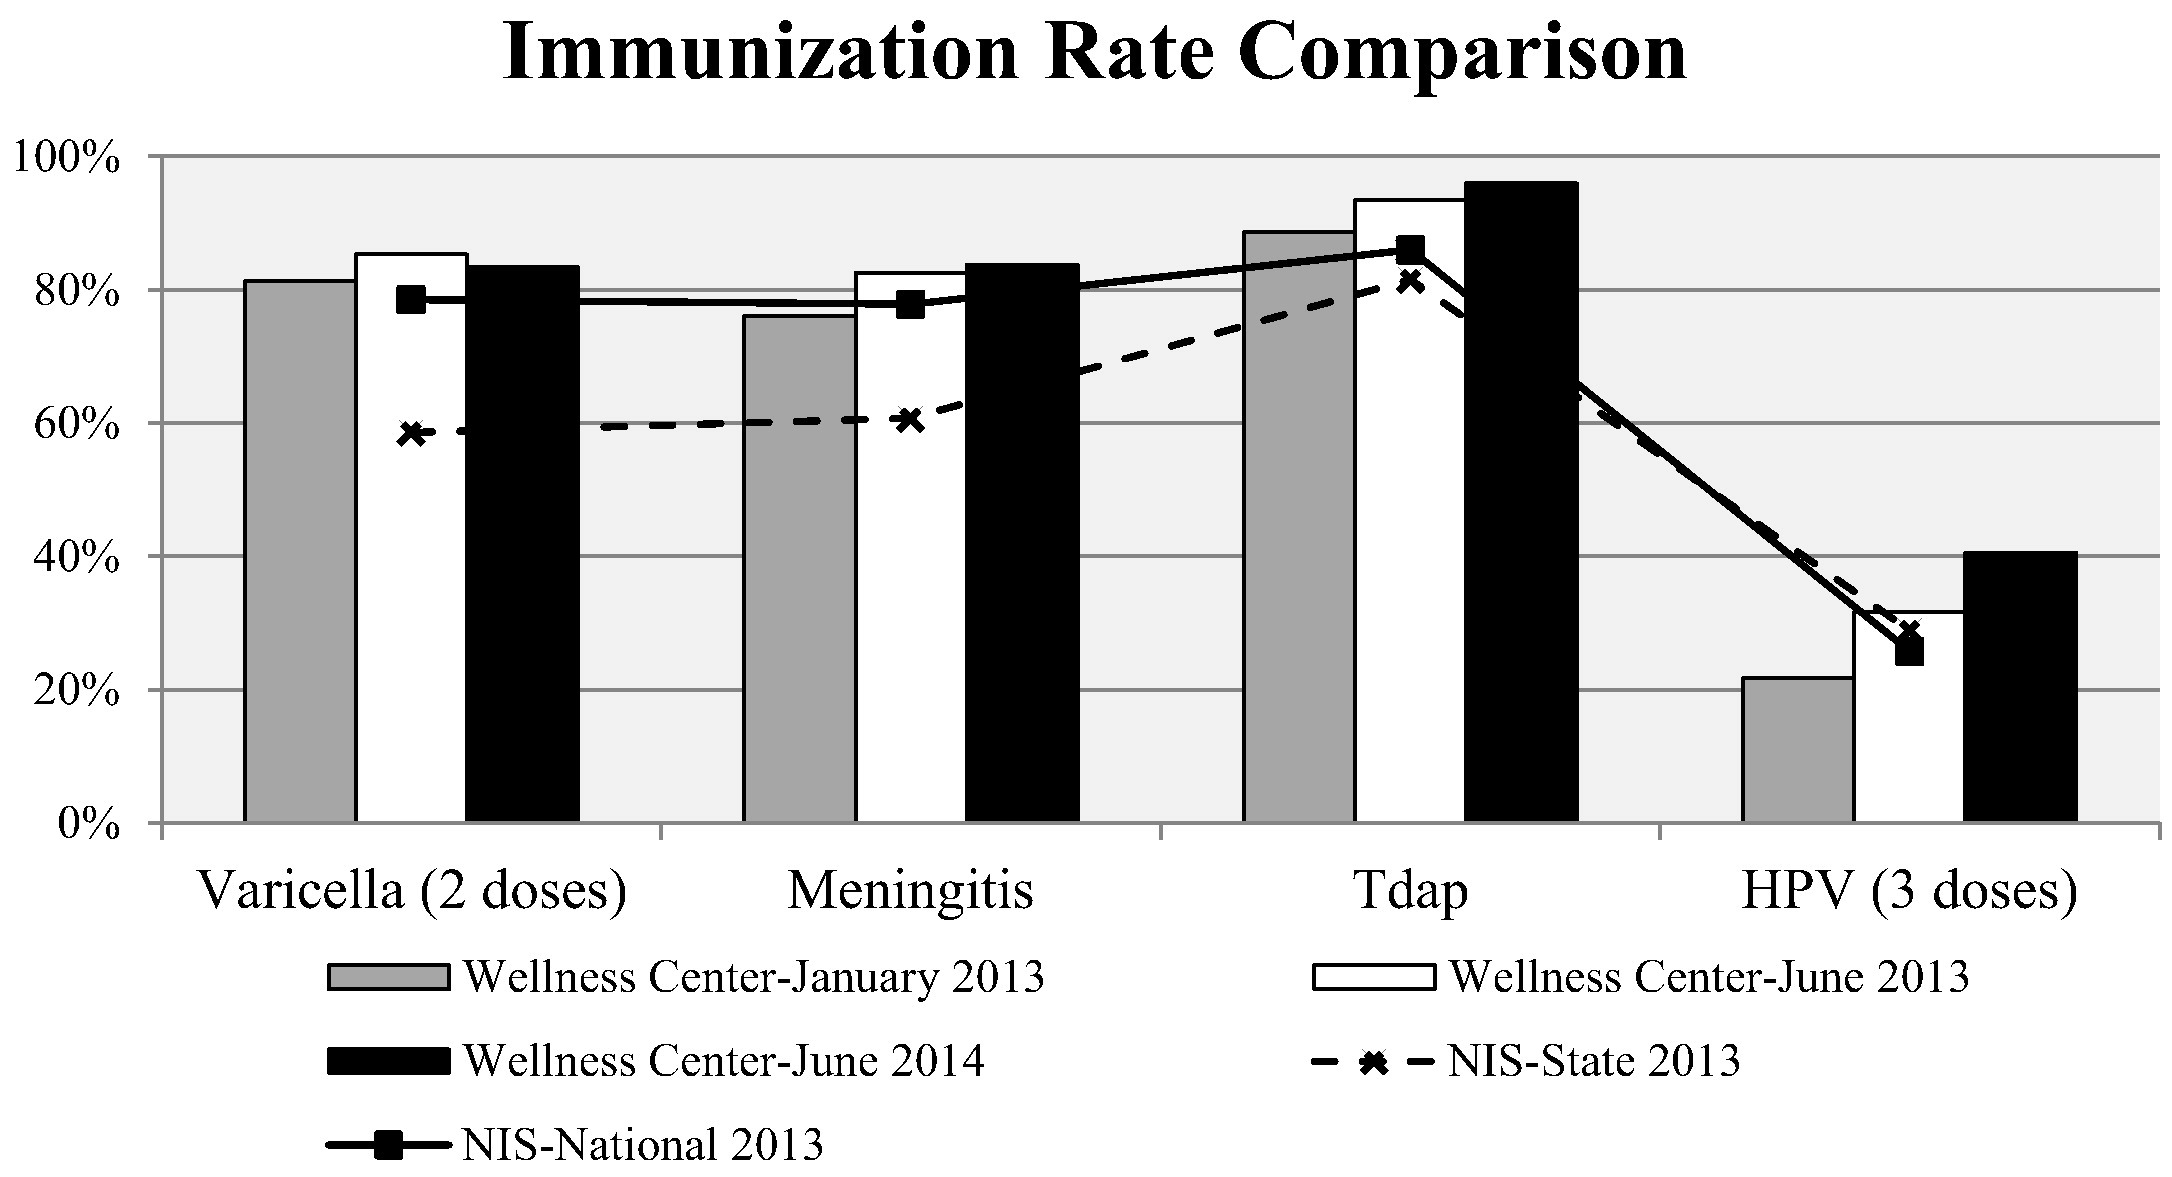 Literature review of knowledge of immunization